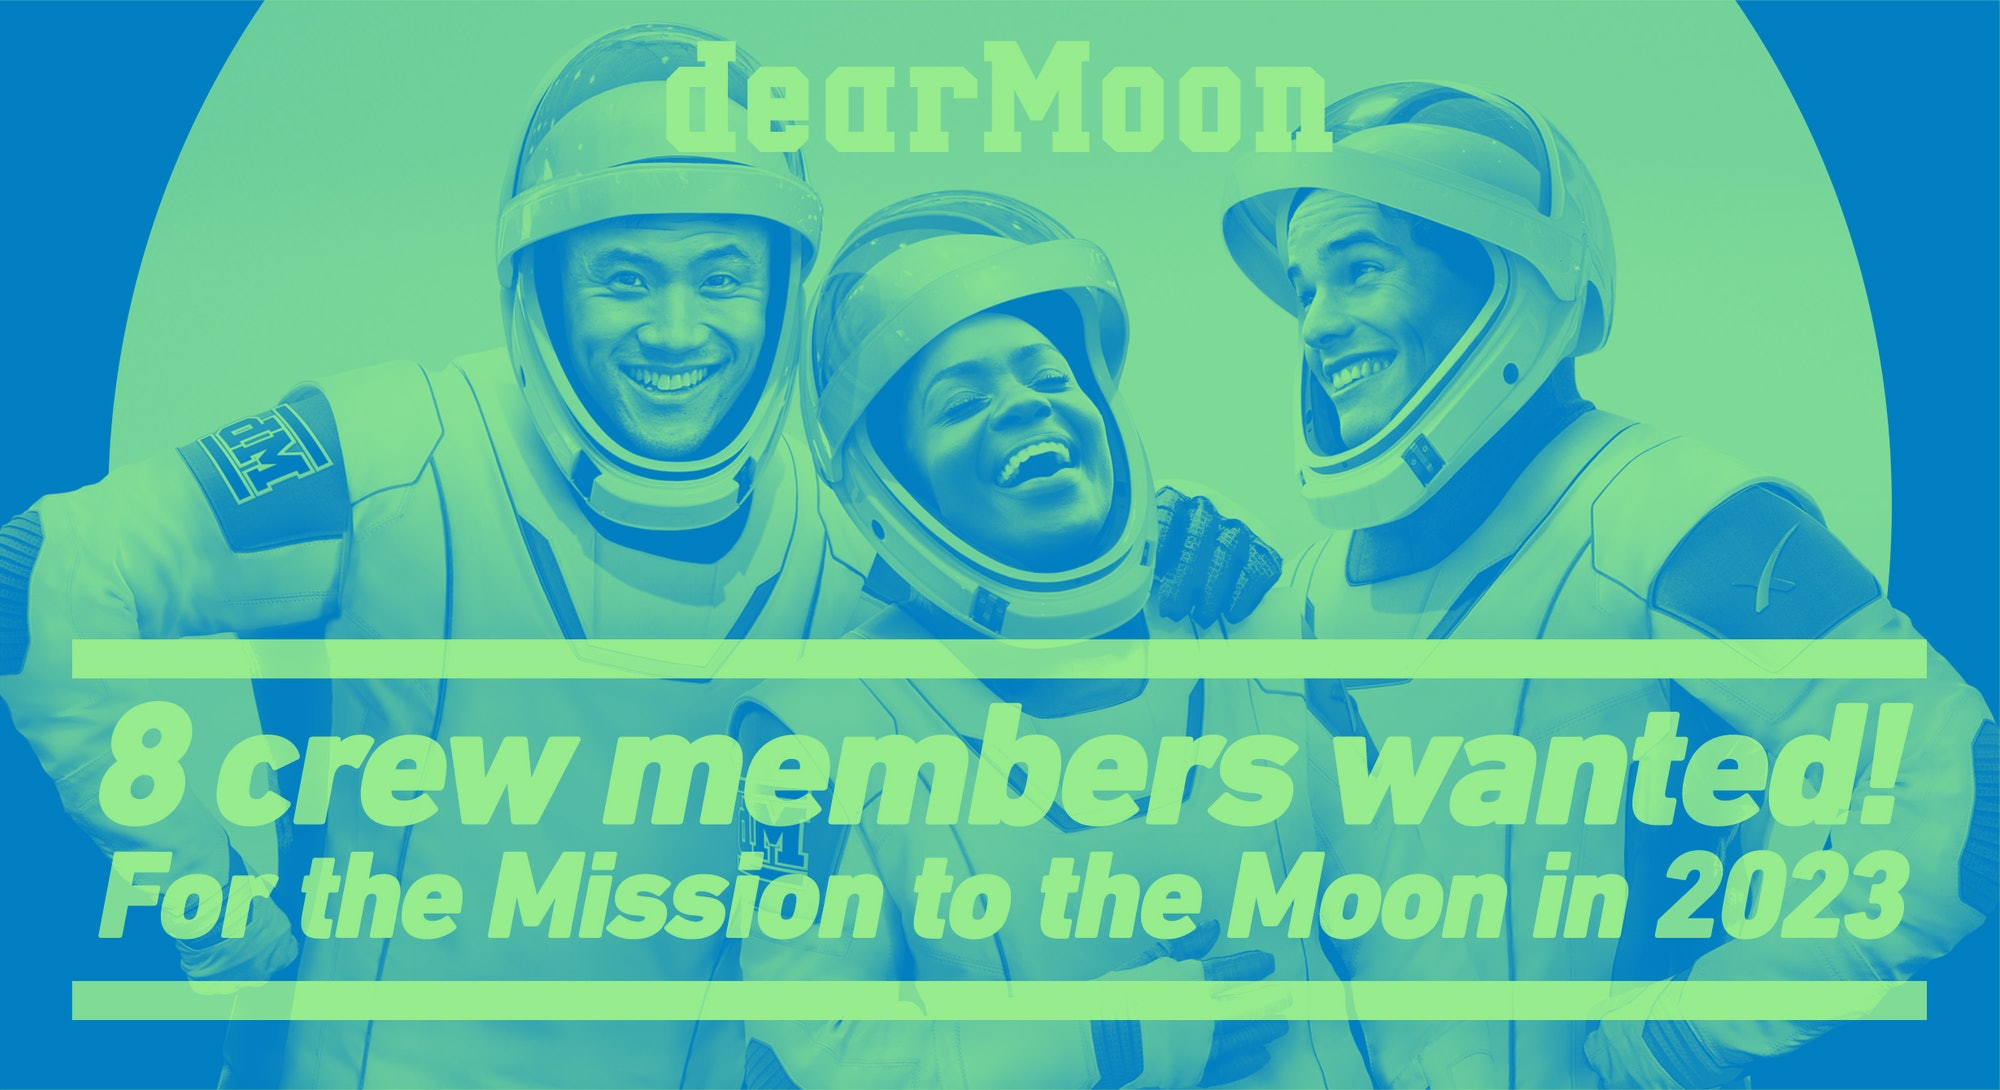 Astronaut graphic for the dearMoon contest to fly around the moon.